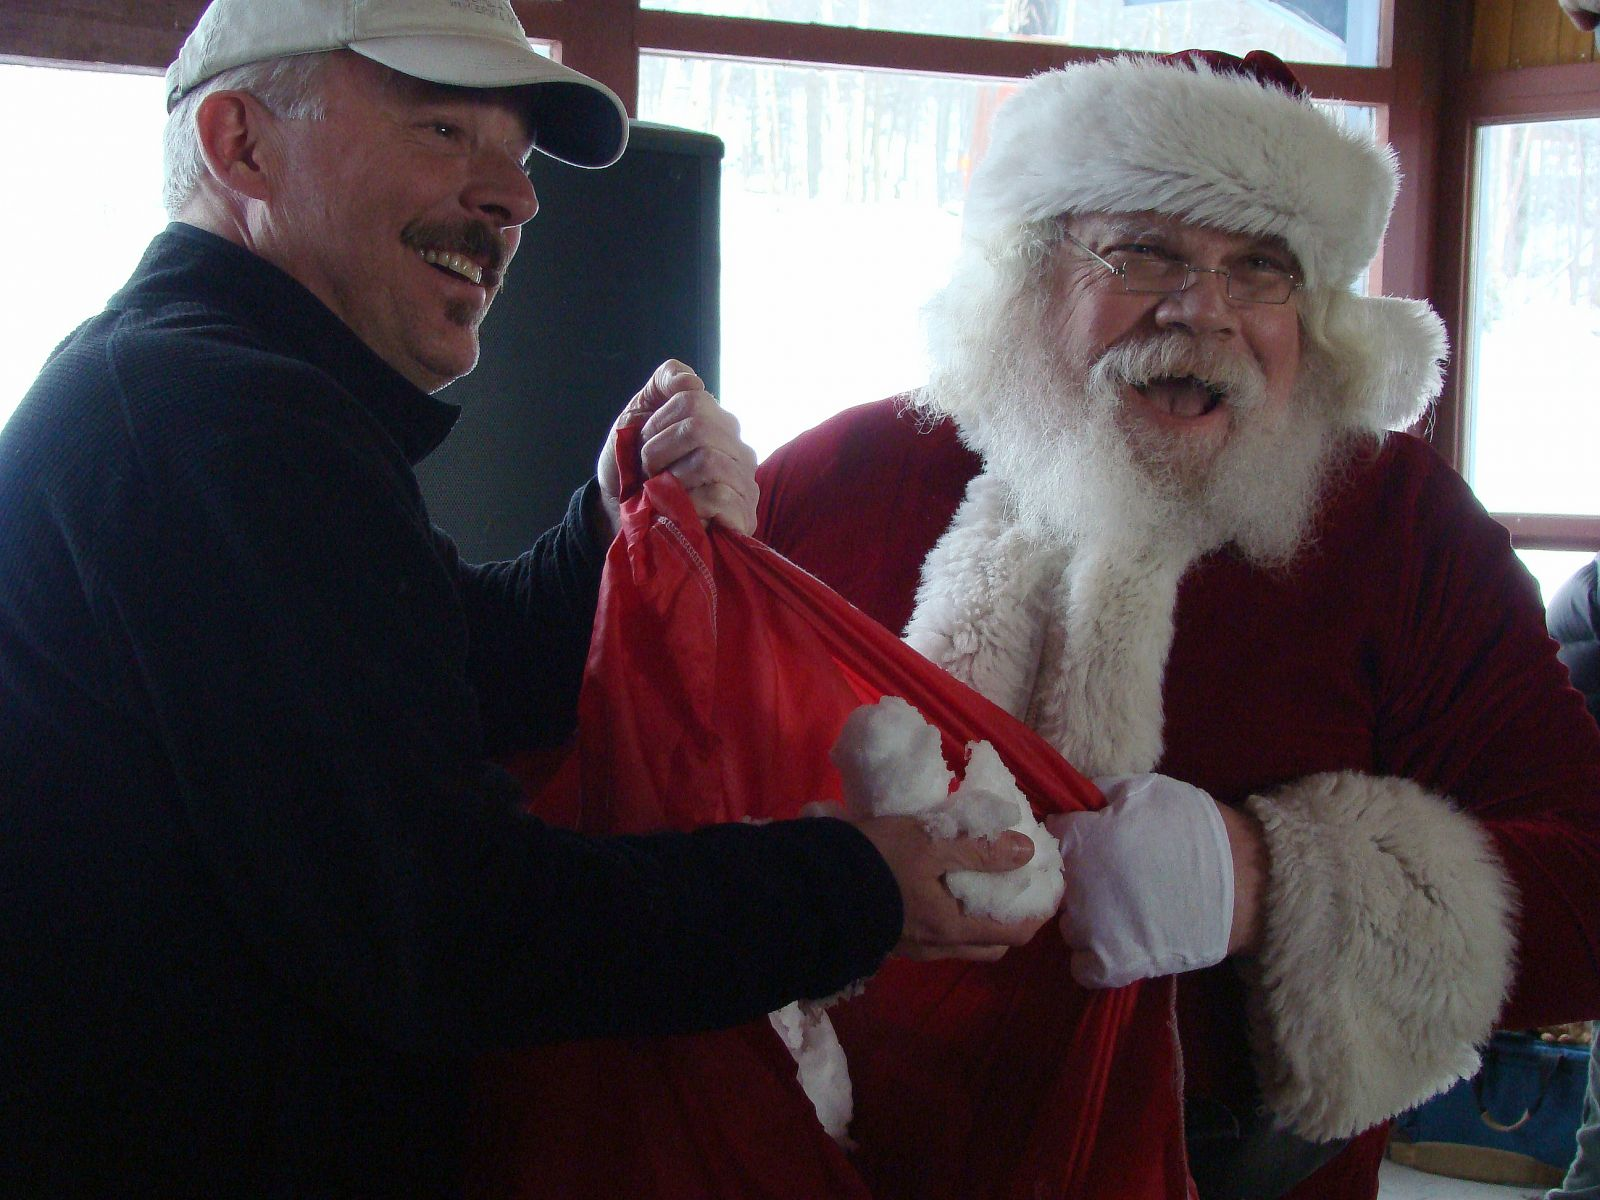 Santa giving Jim the gift of snow for Christmas (JimCookieLanthier photo)